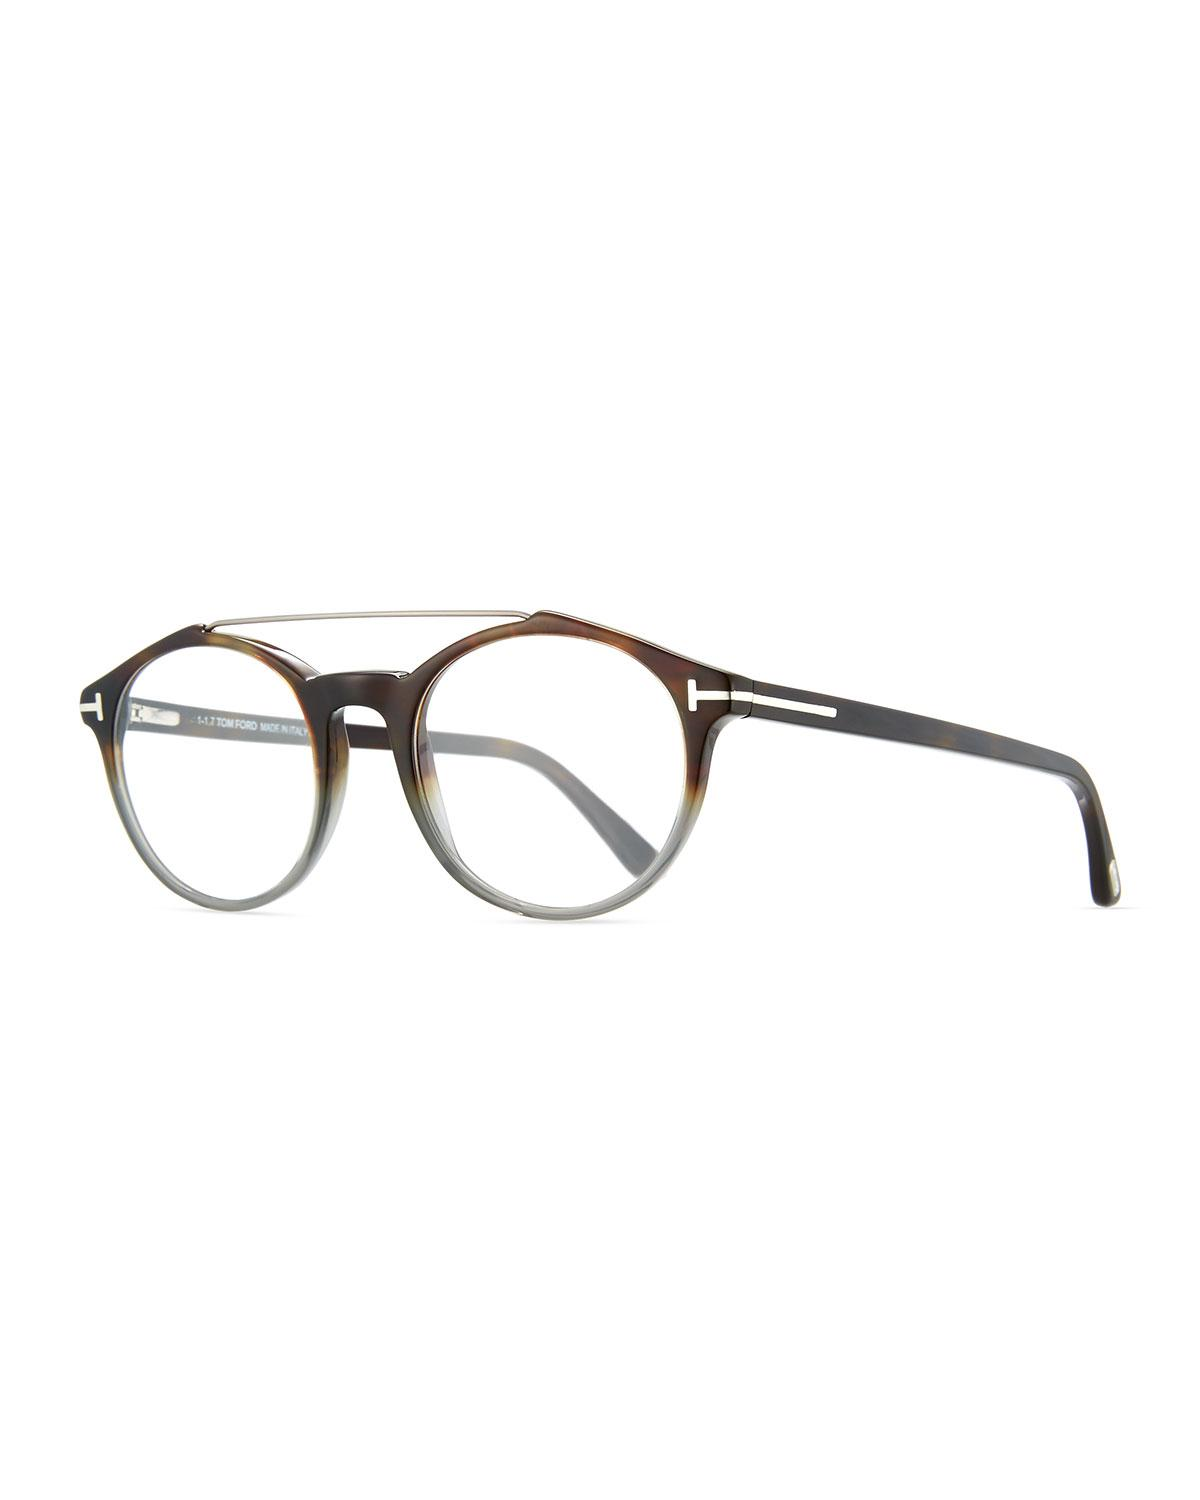 c2f846624ad Lyst - Tom Ford Round Acetate Optical Frames With Brow Bar in Gray